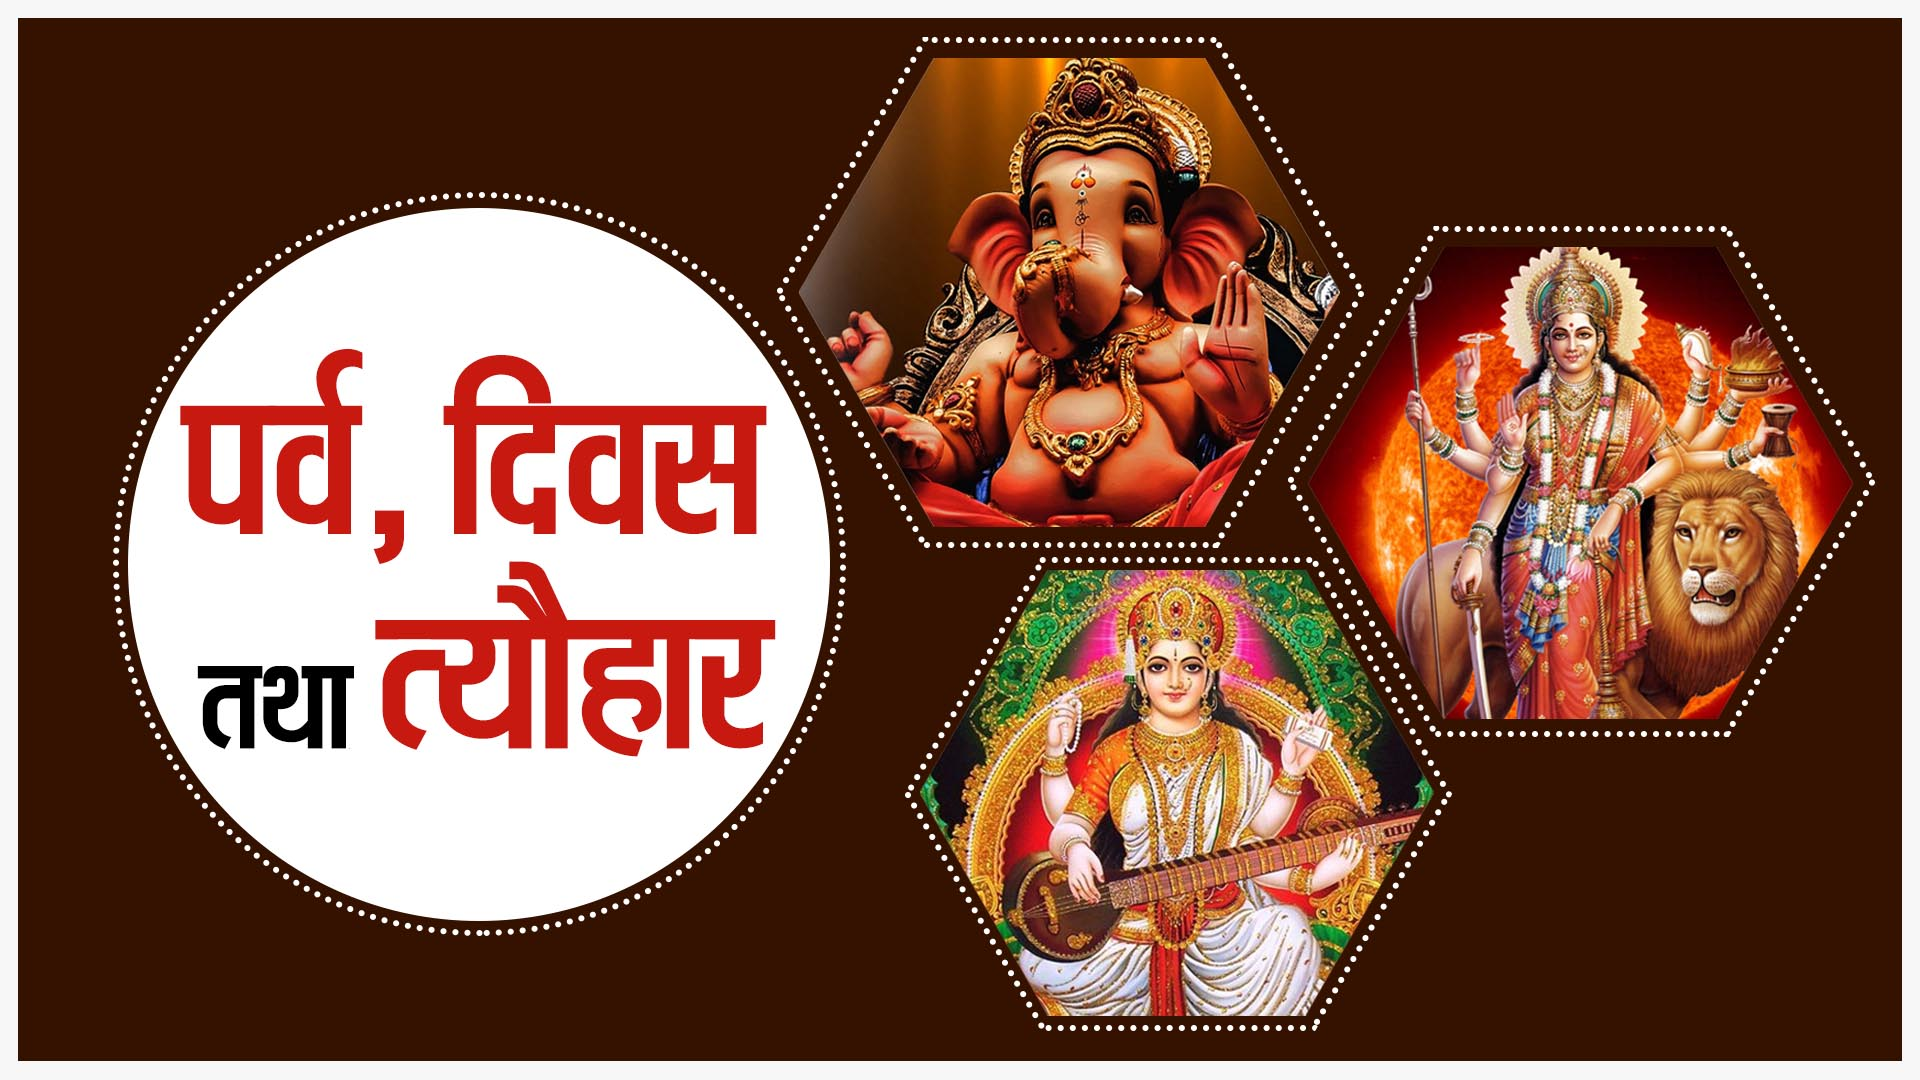 PunjabKesari, Fast and Festival From 18th october to 24th october 2020, vrat Katha In Hindi, Hindu Vrat Tyohar, Vrat This Year Calender, Festivals This Year Calender, हिन्दू त्यौहार, Chandar Darshan, Sidhi Vinayank Chaturthi, Lalita Vrat, Sarsawati Pujan, Mela Chamunda, Durga Ashtmi, Mahaashtmi, Mahanavami